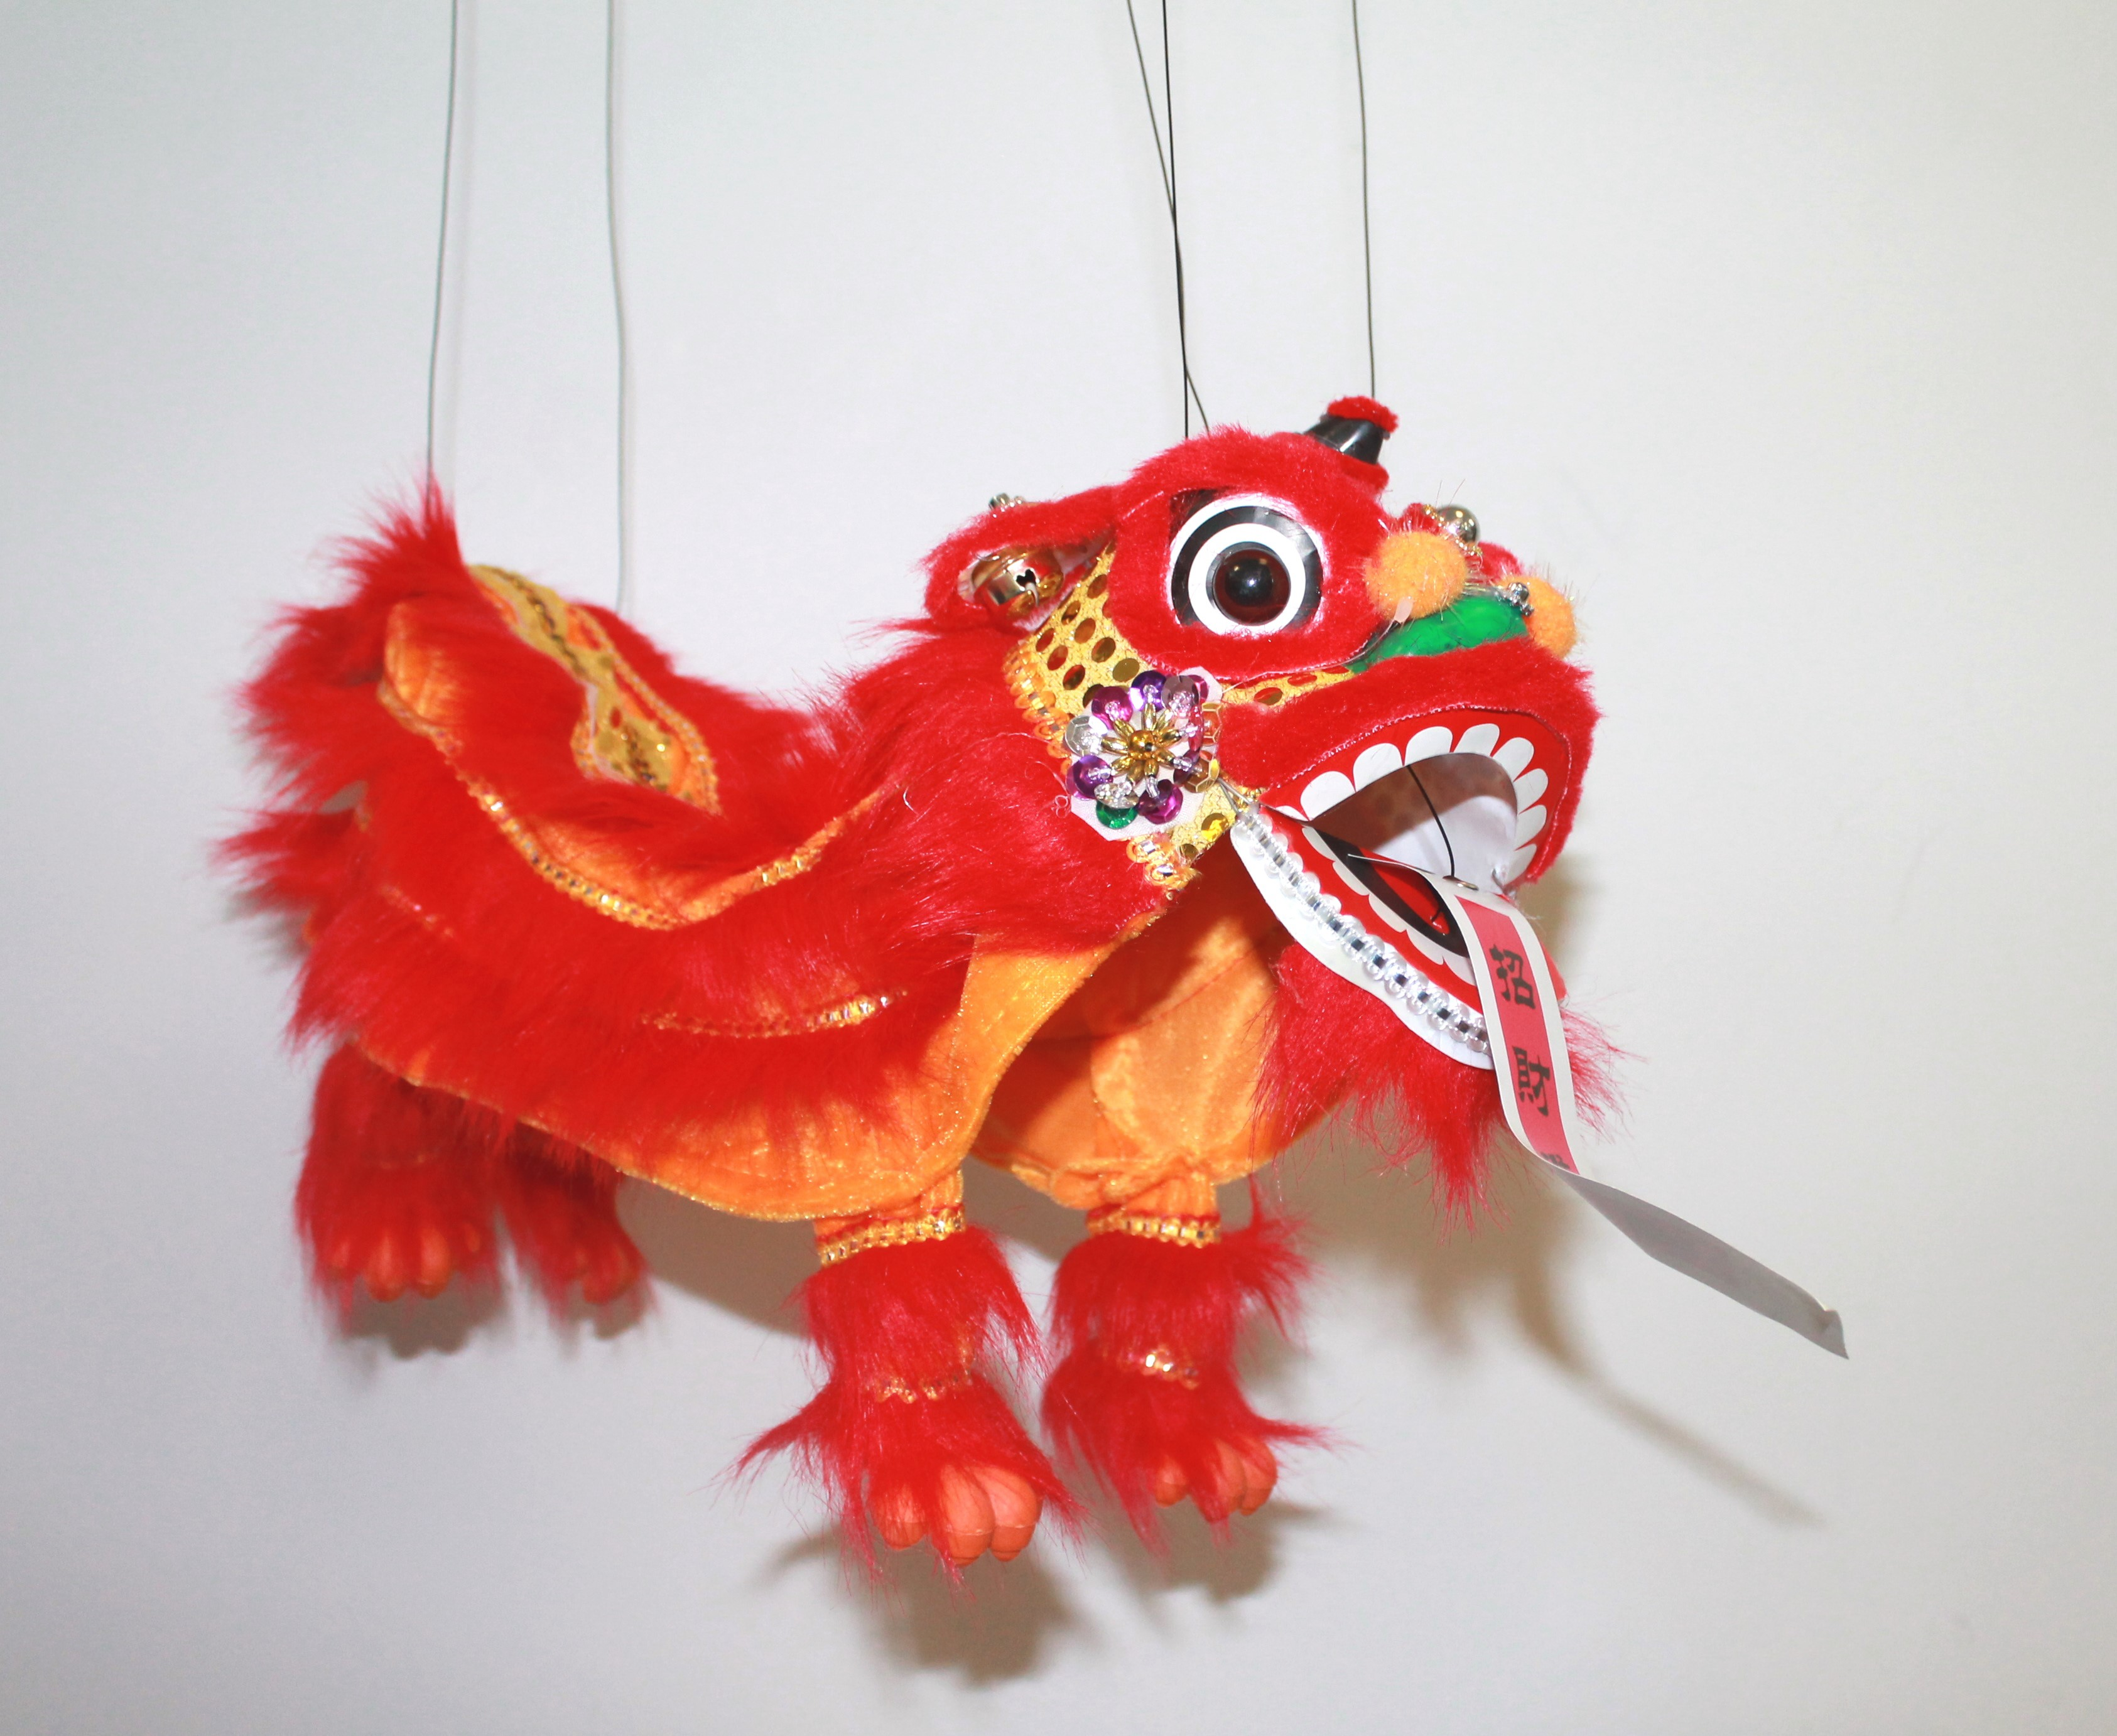 Orange and red lion puppet on strings.